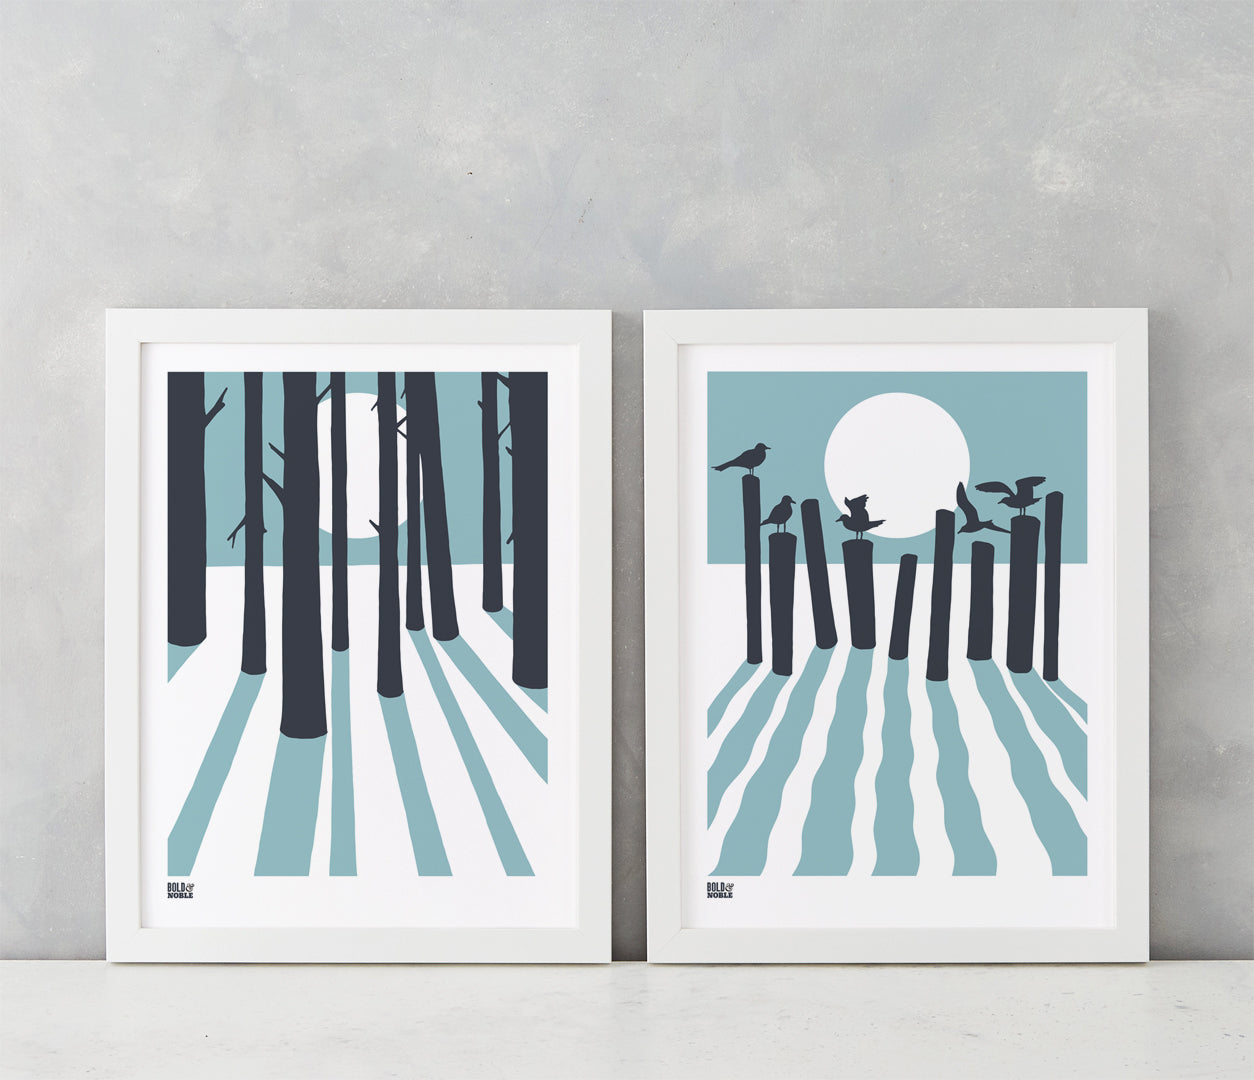 Wall art ideas, economical screen prints, On the Beach and In the Woods artwork in blue and grey